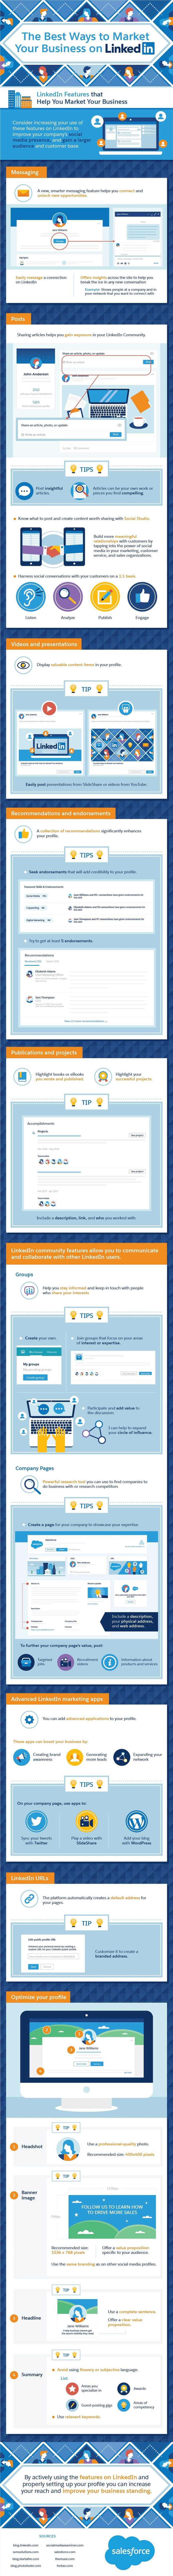 The Best Ways to Market Your Business on LinkedIn [Infographic] | Social Media Today